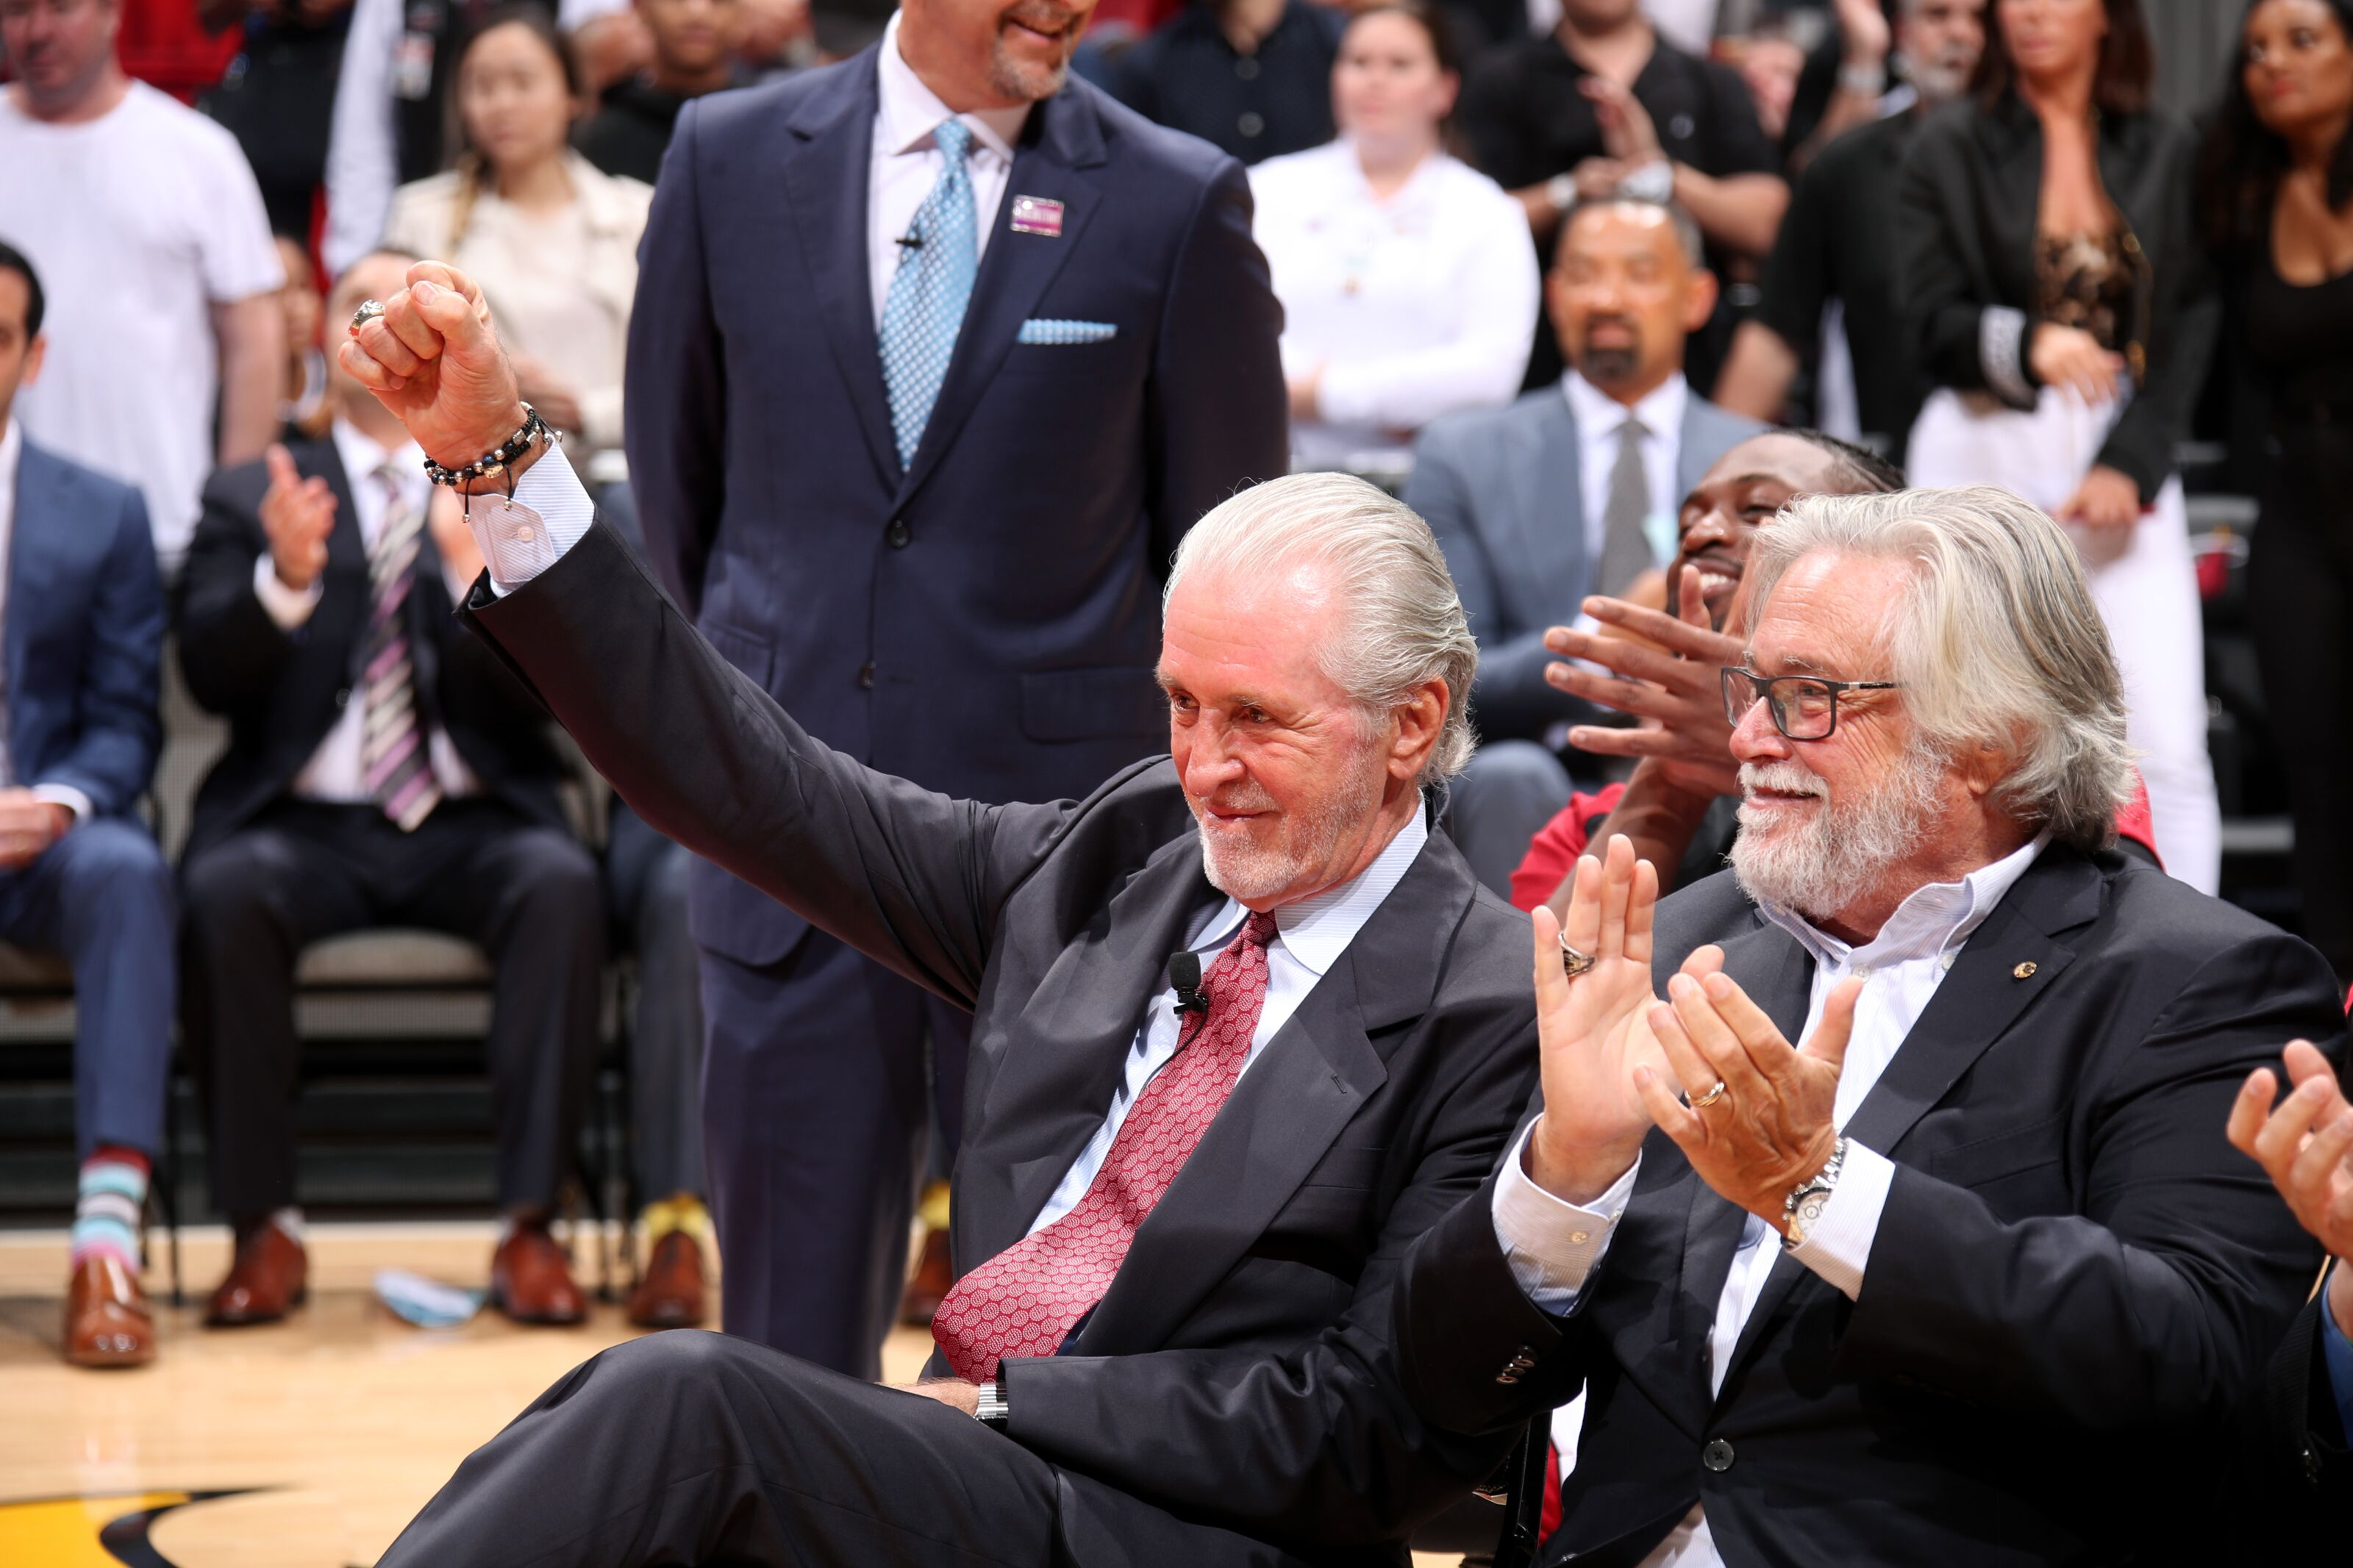 Miami Heat: Numbers give impression that Riley will make good on promise